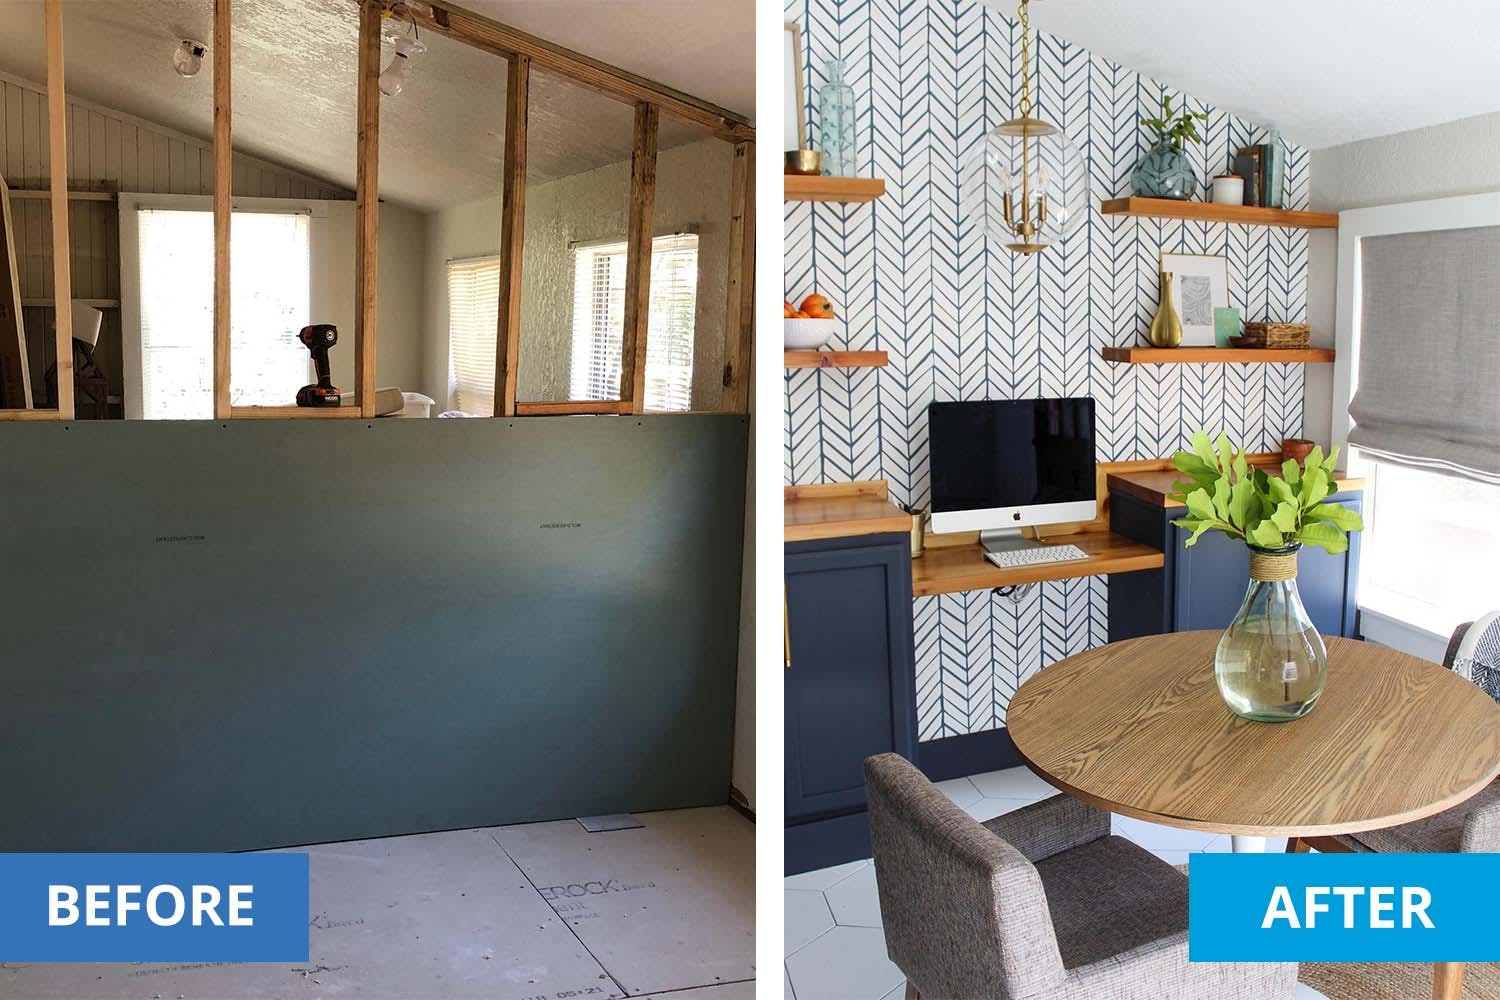 left shows the process of creating a divider wall. Right shows the complete divider wall, furnished as a workspace off the kitchen.